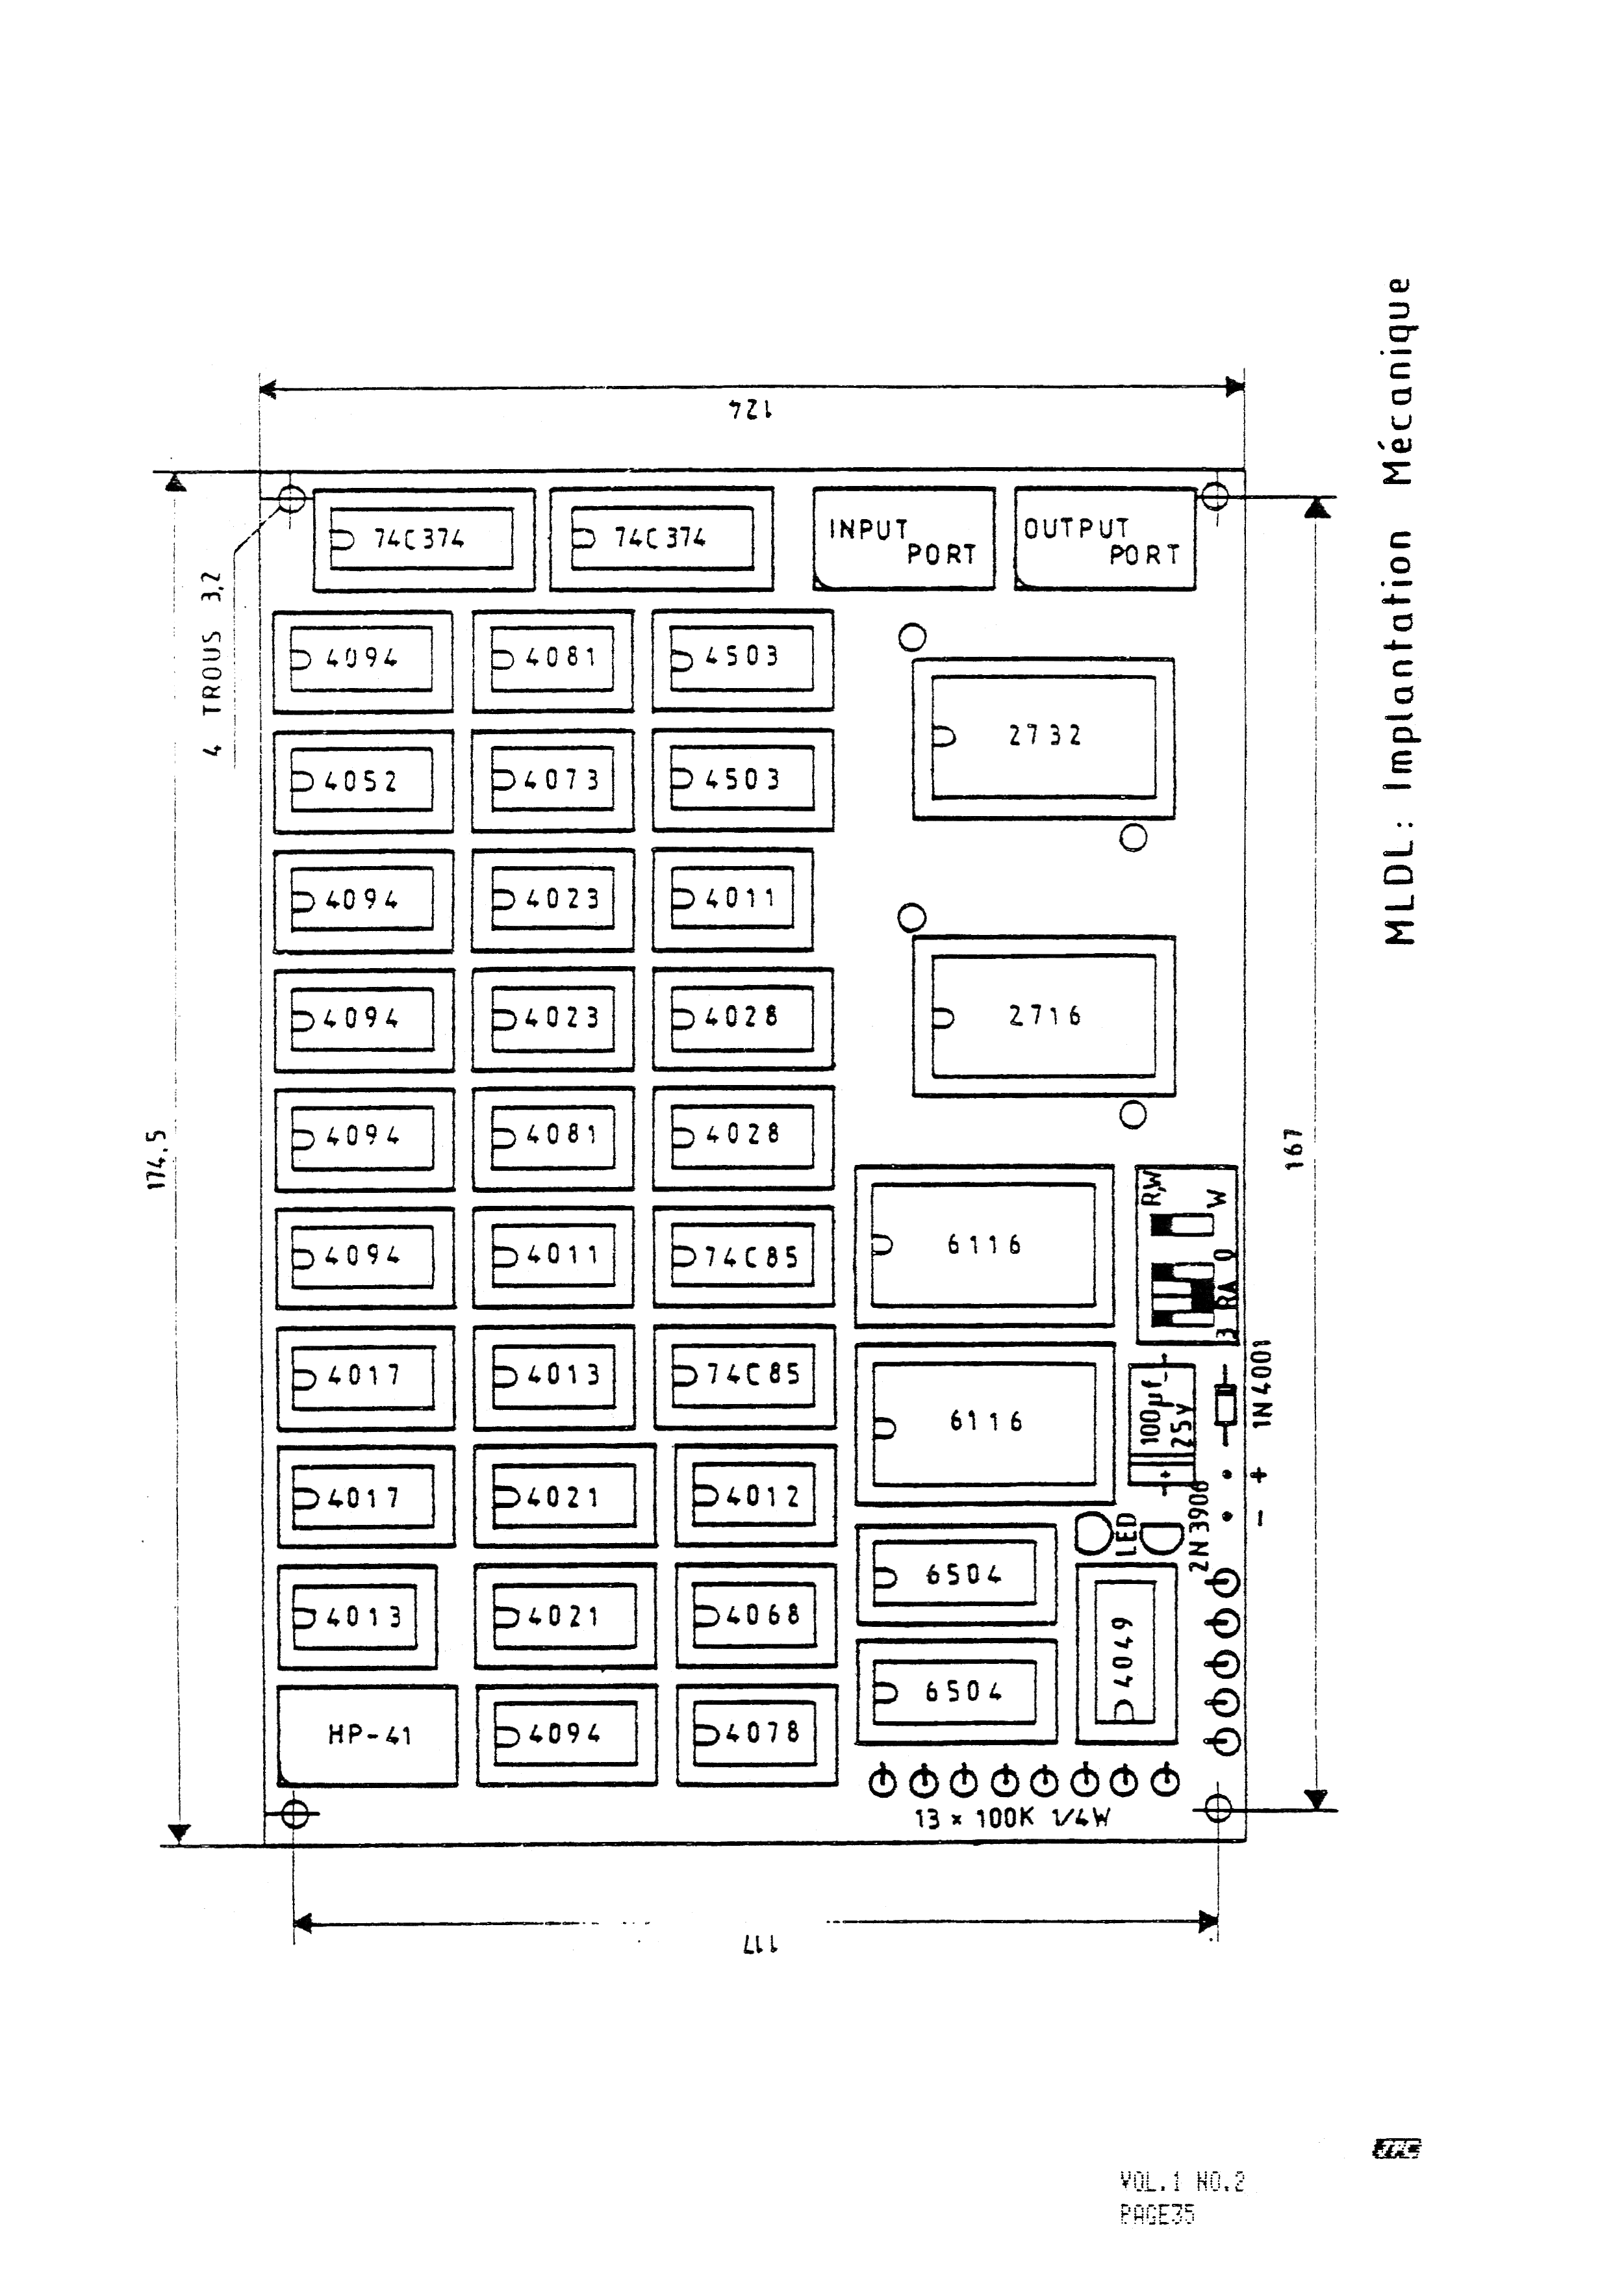 Jp-2-page-35-1000